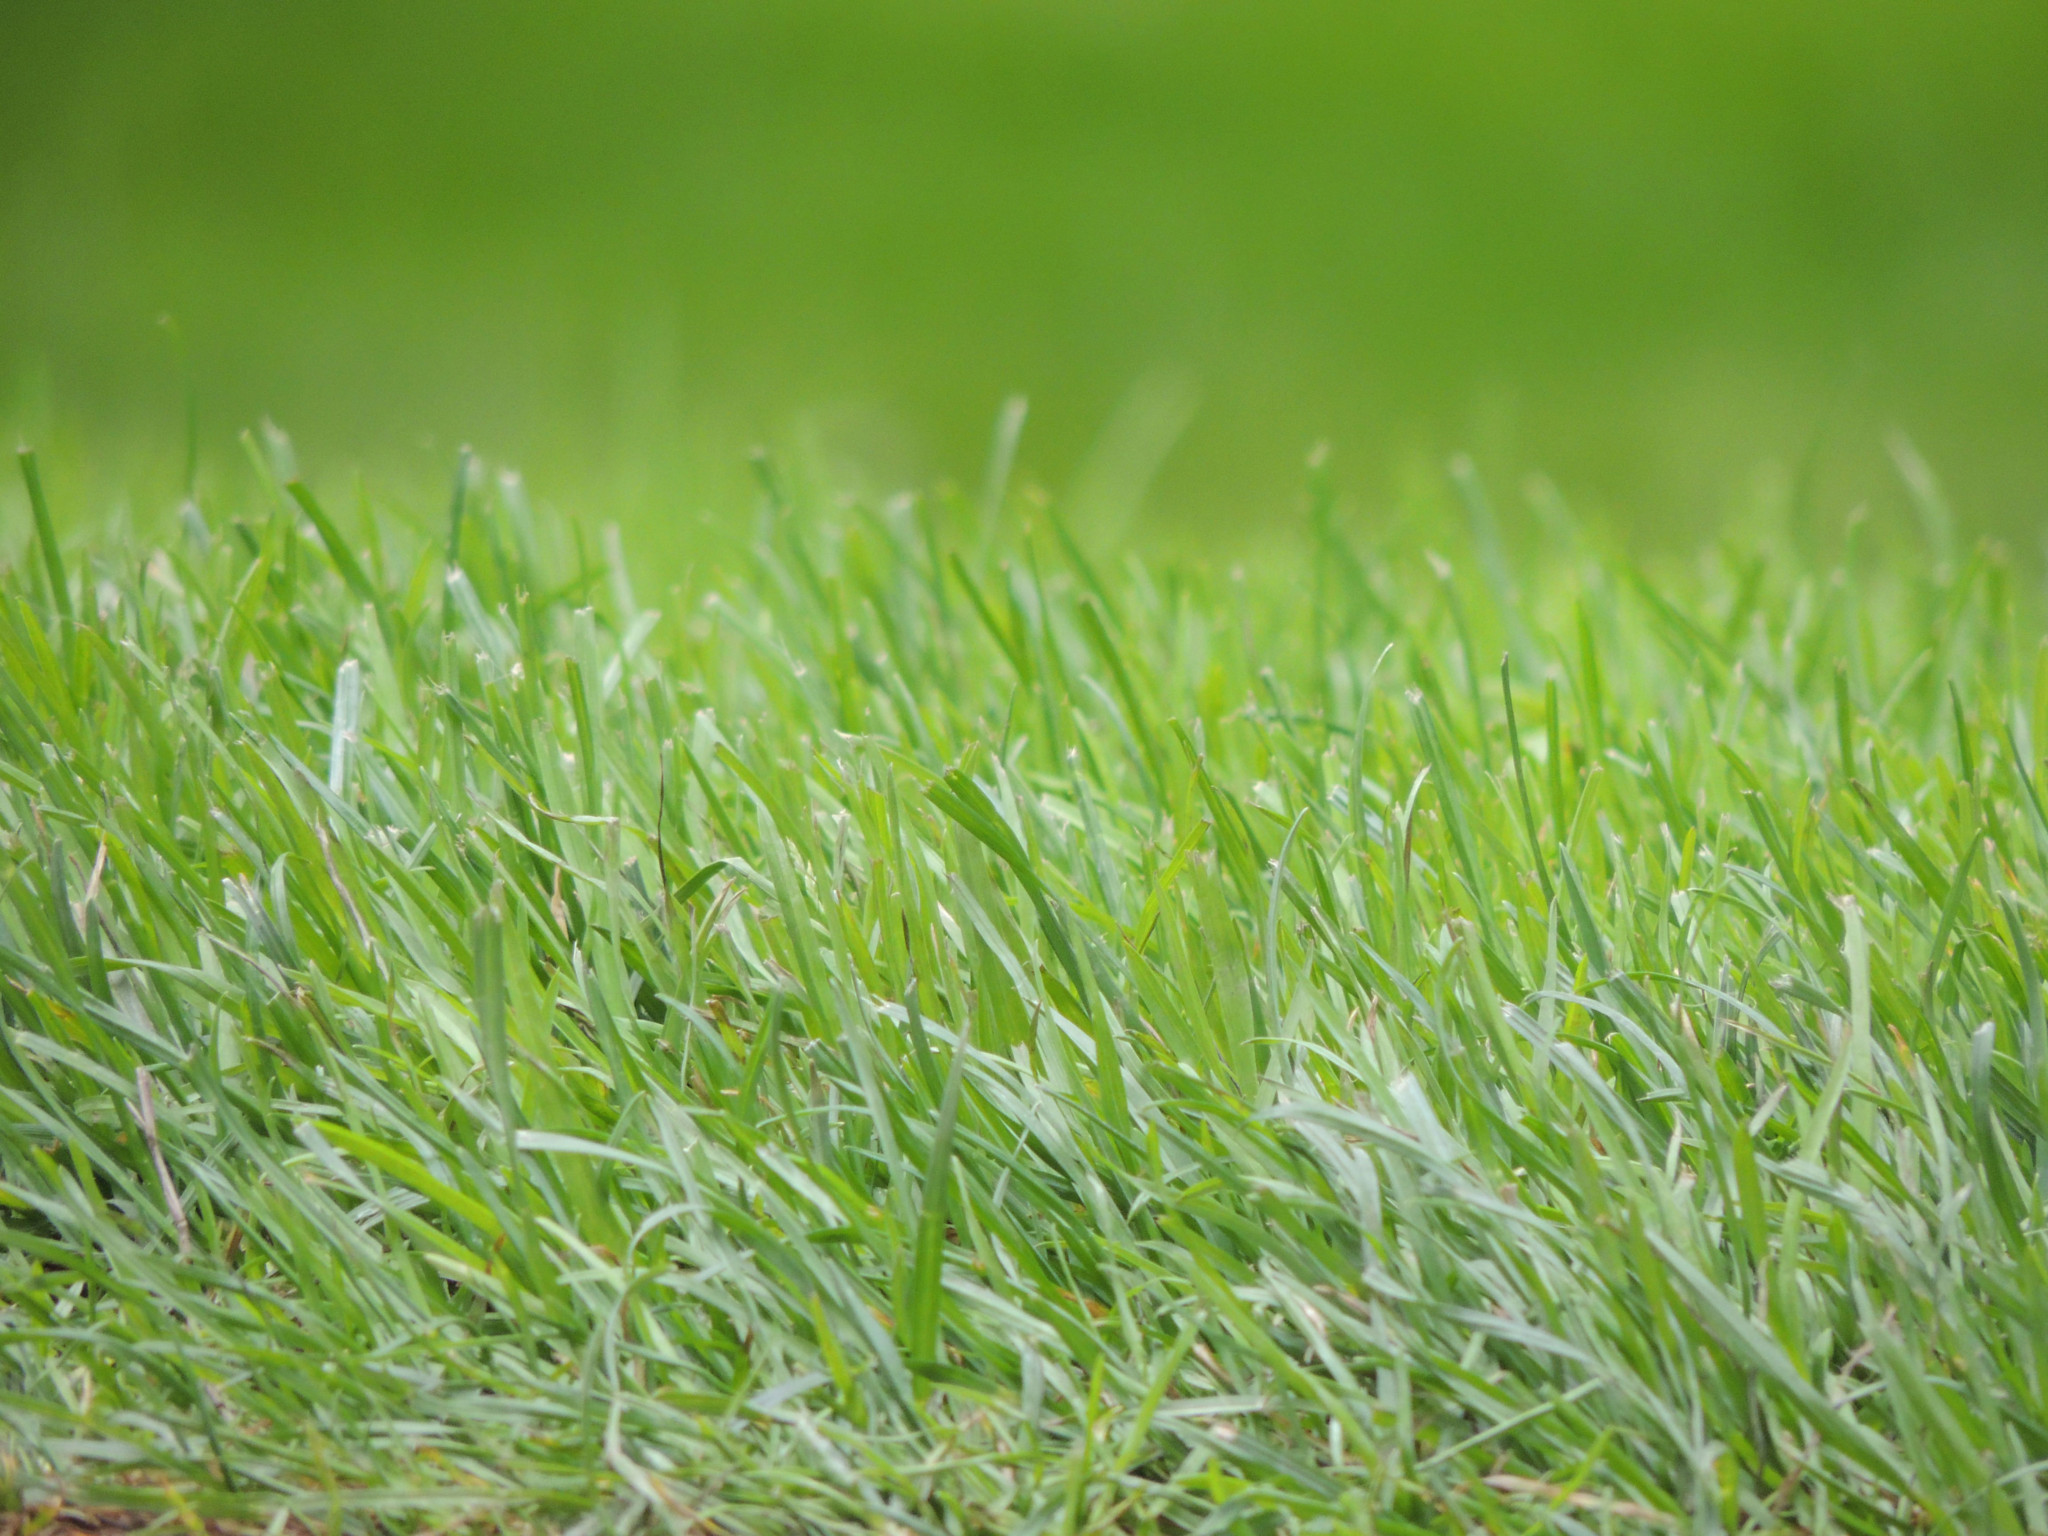 Envyness – The grass is always greener on the other side